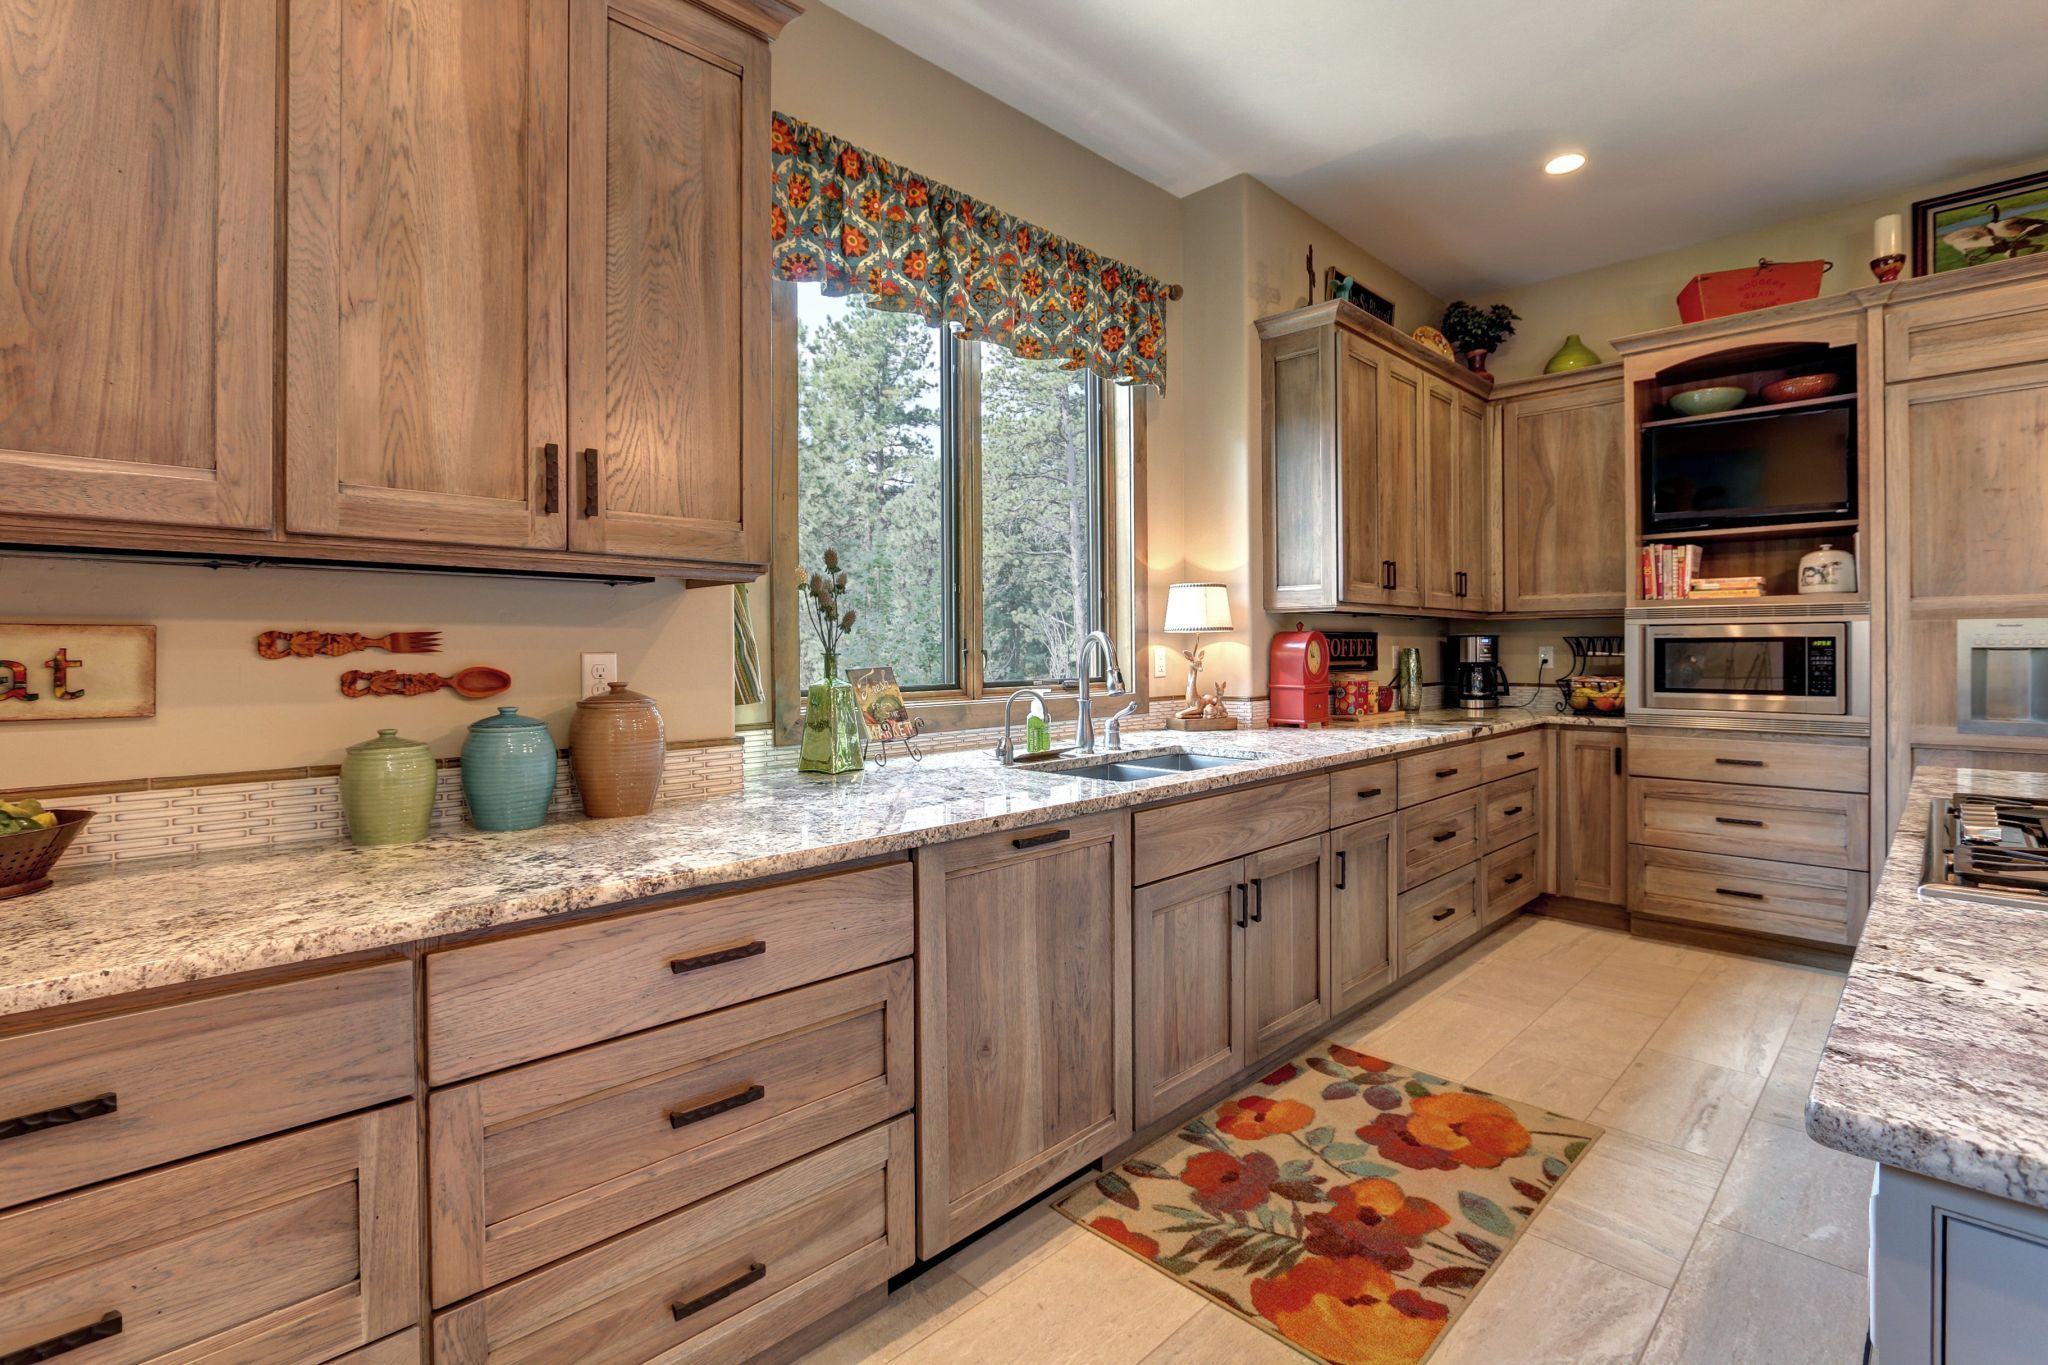 rustic mountain hickory kitchen cabinets rustic kitchen cabinets best kitchen cabinets on kitchen cabinets natural wood id=59452